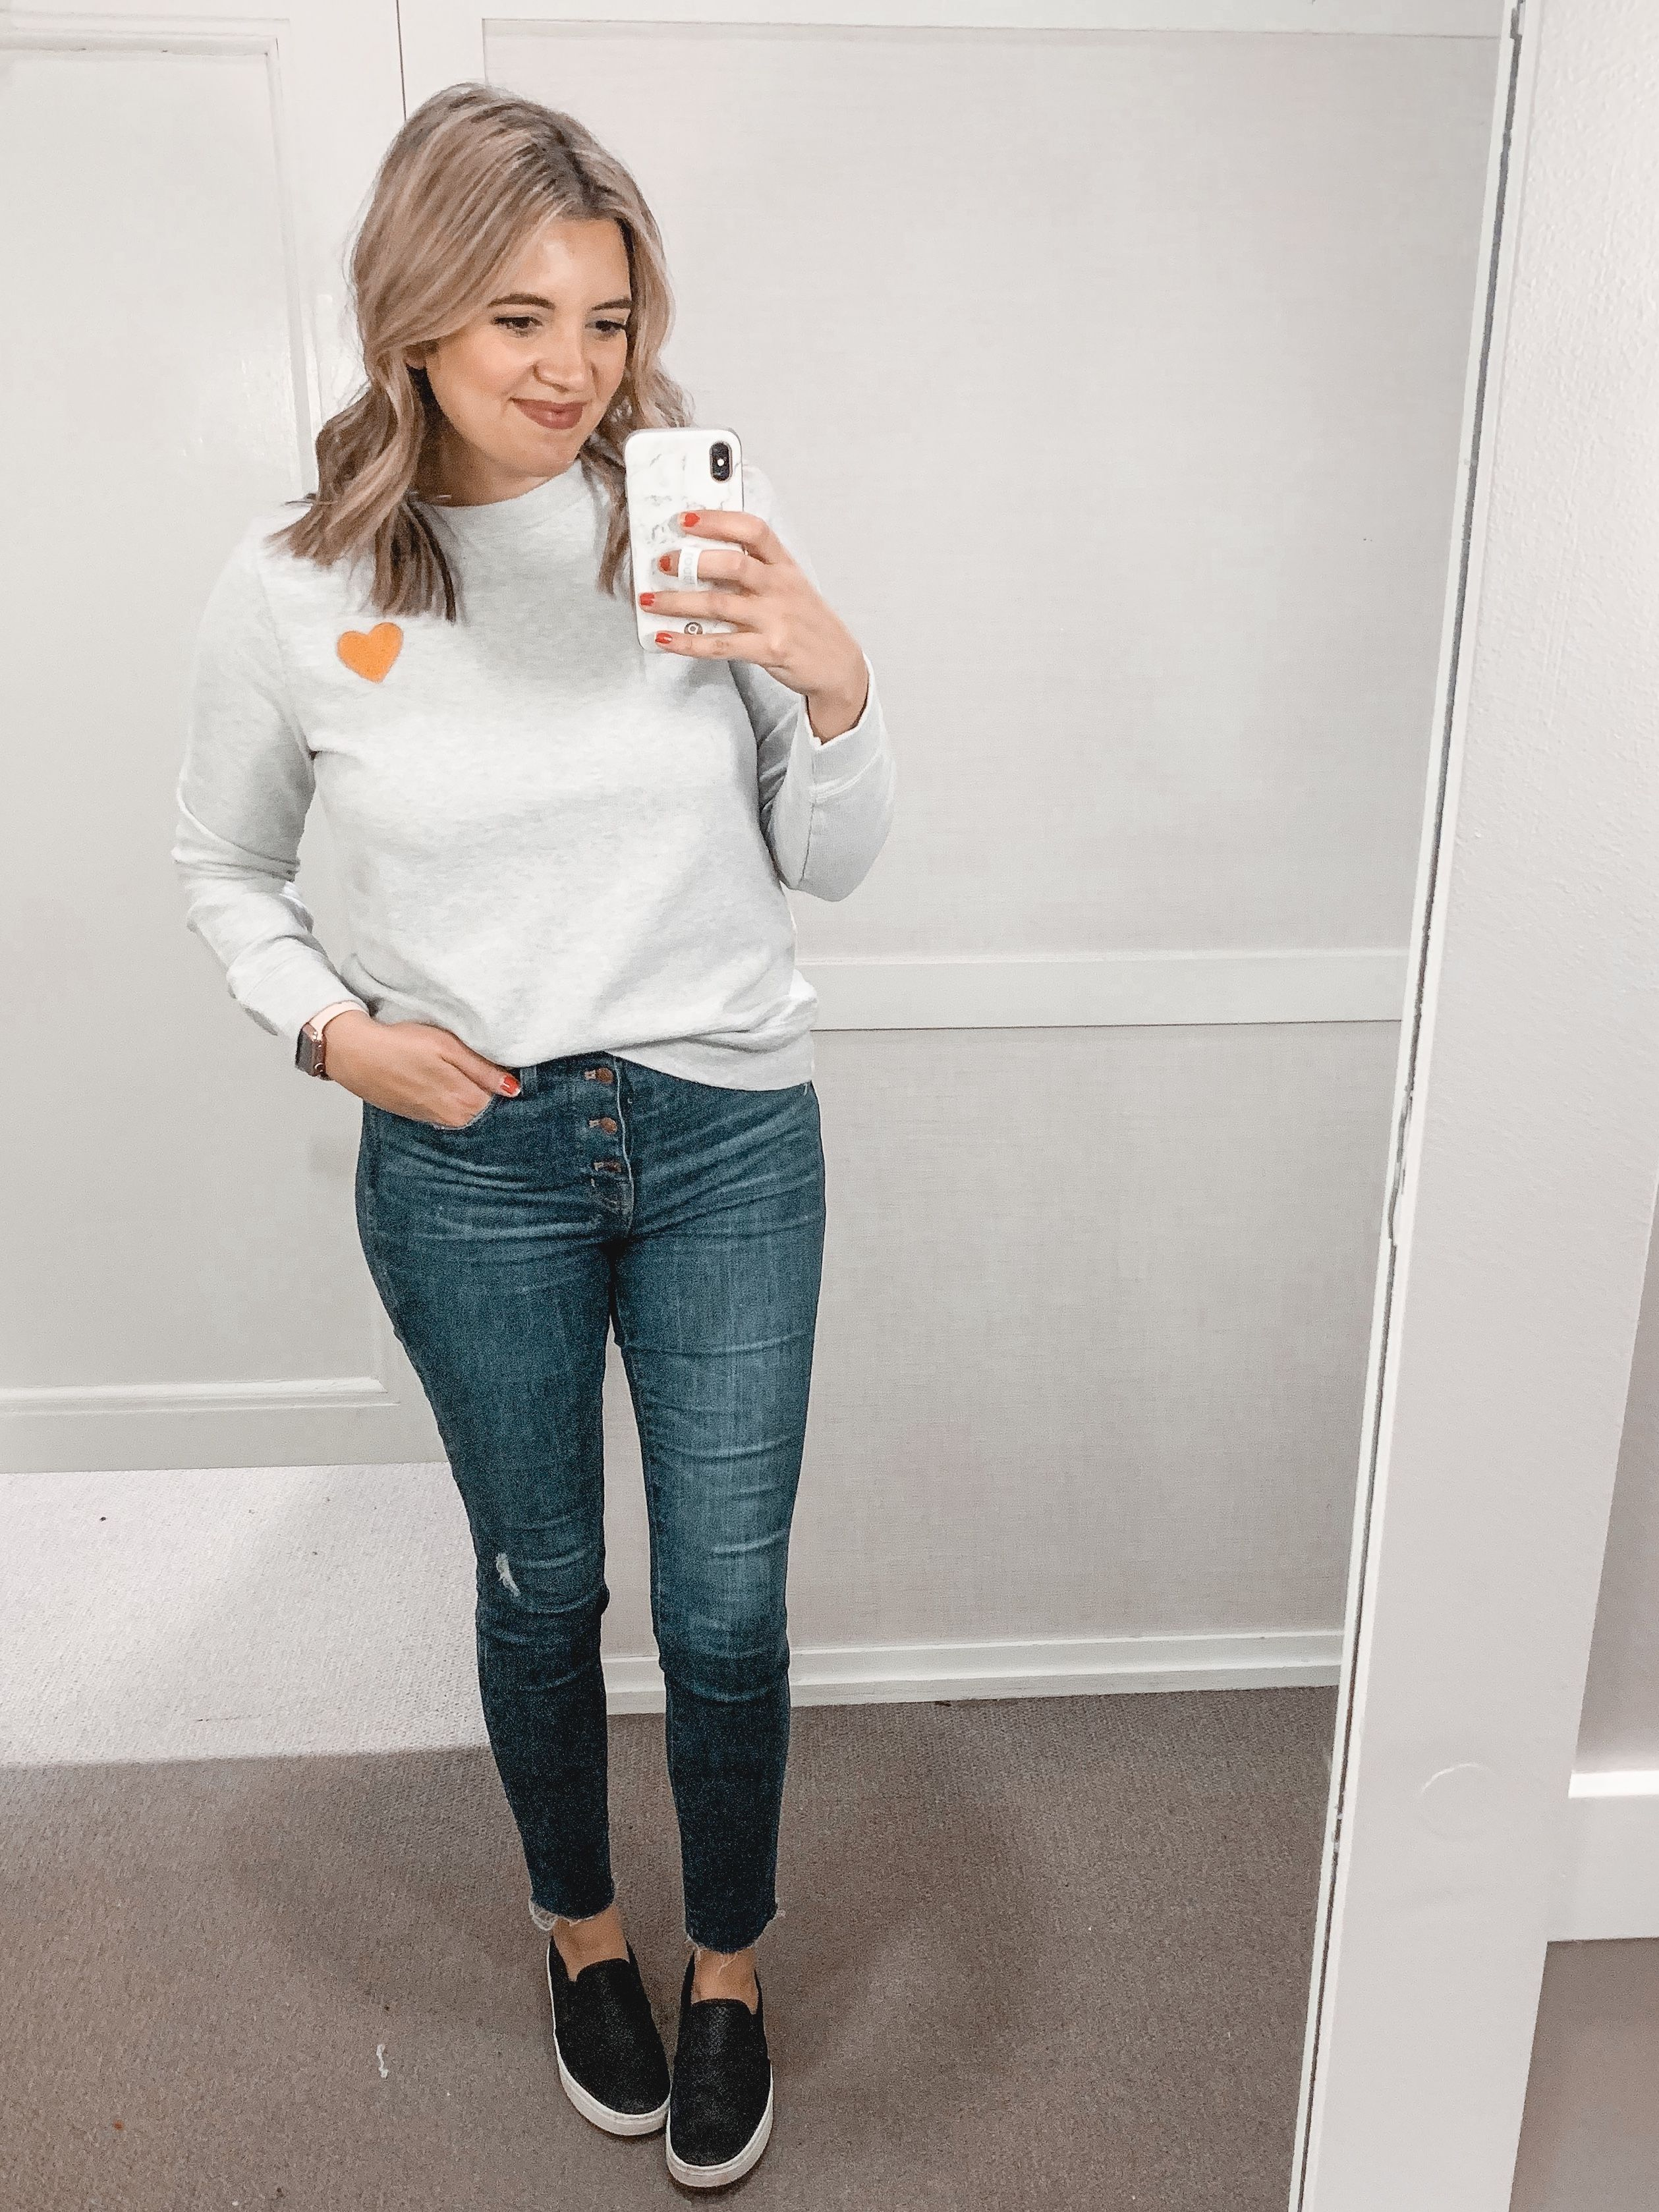 bbae737f91 Affordable style blogger Lauren Dix shares a January Loft try on with over  ten winter outfits!